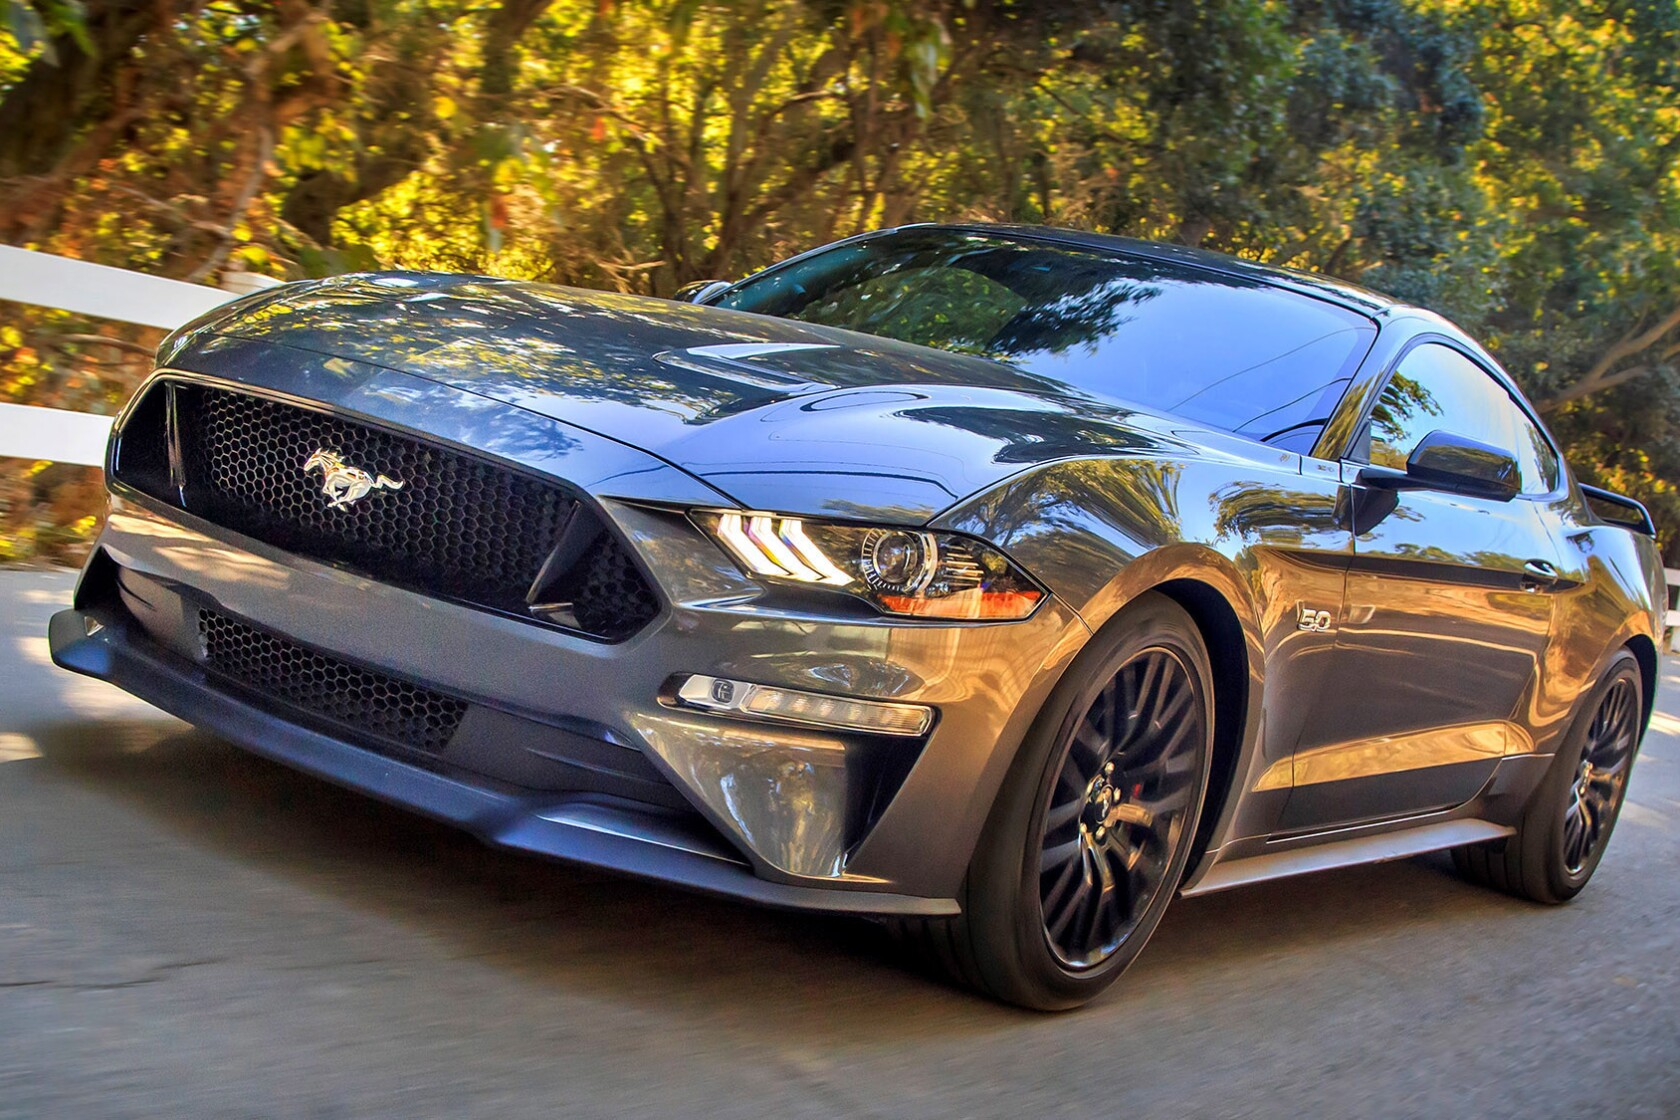 Review: 2018 Ford Mustang: Best sports car buy in town? - Los Angeles Times